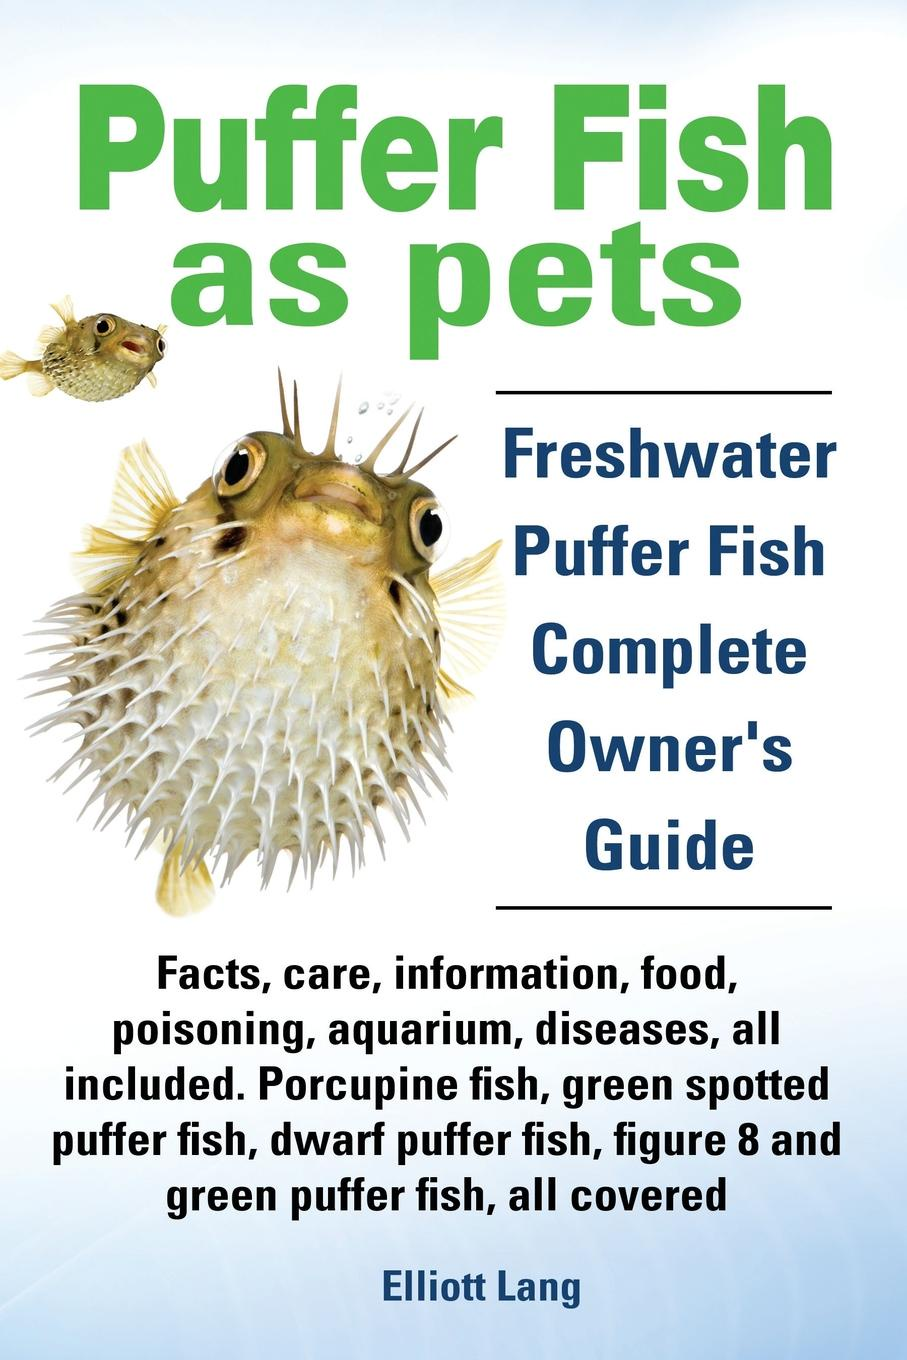 Elliott Lang Puffer Fish as Pets. Freshwater Puffer Fish Facts, Care, Information, Food, Poisoning, Aquarium, Diseases, All Included. the Must Have Guide for All P about me fish